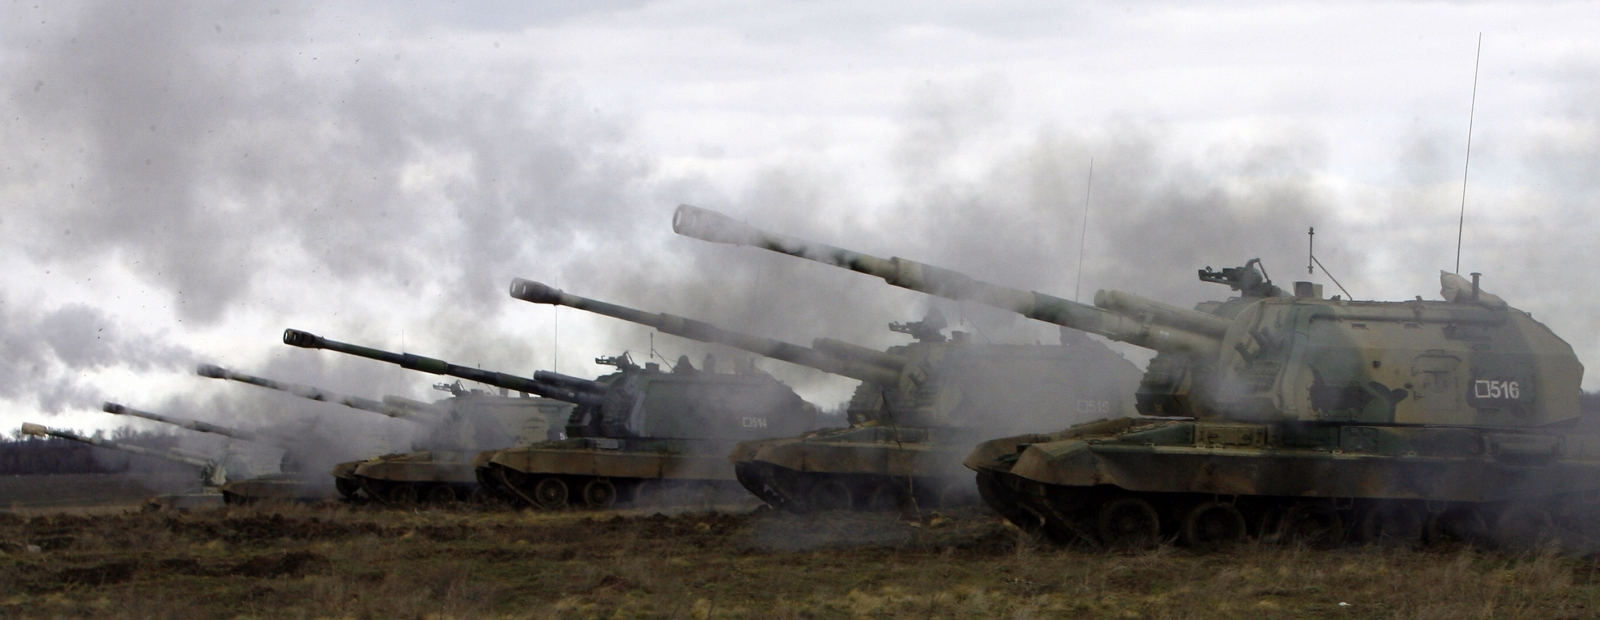 Russian Msta-S self-propelled howitzers fire